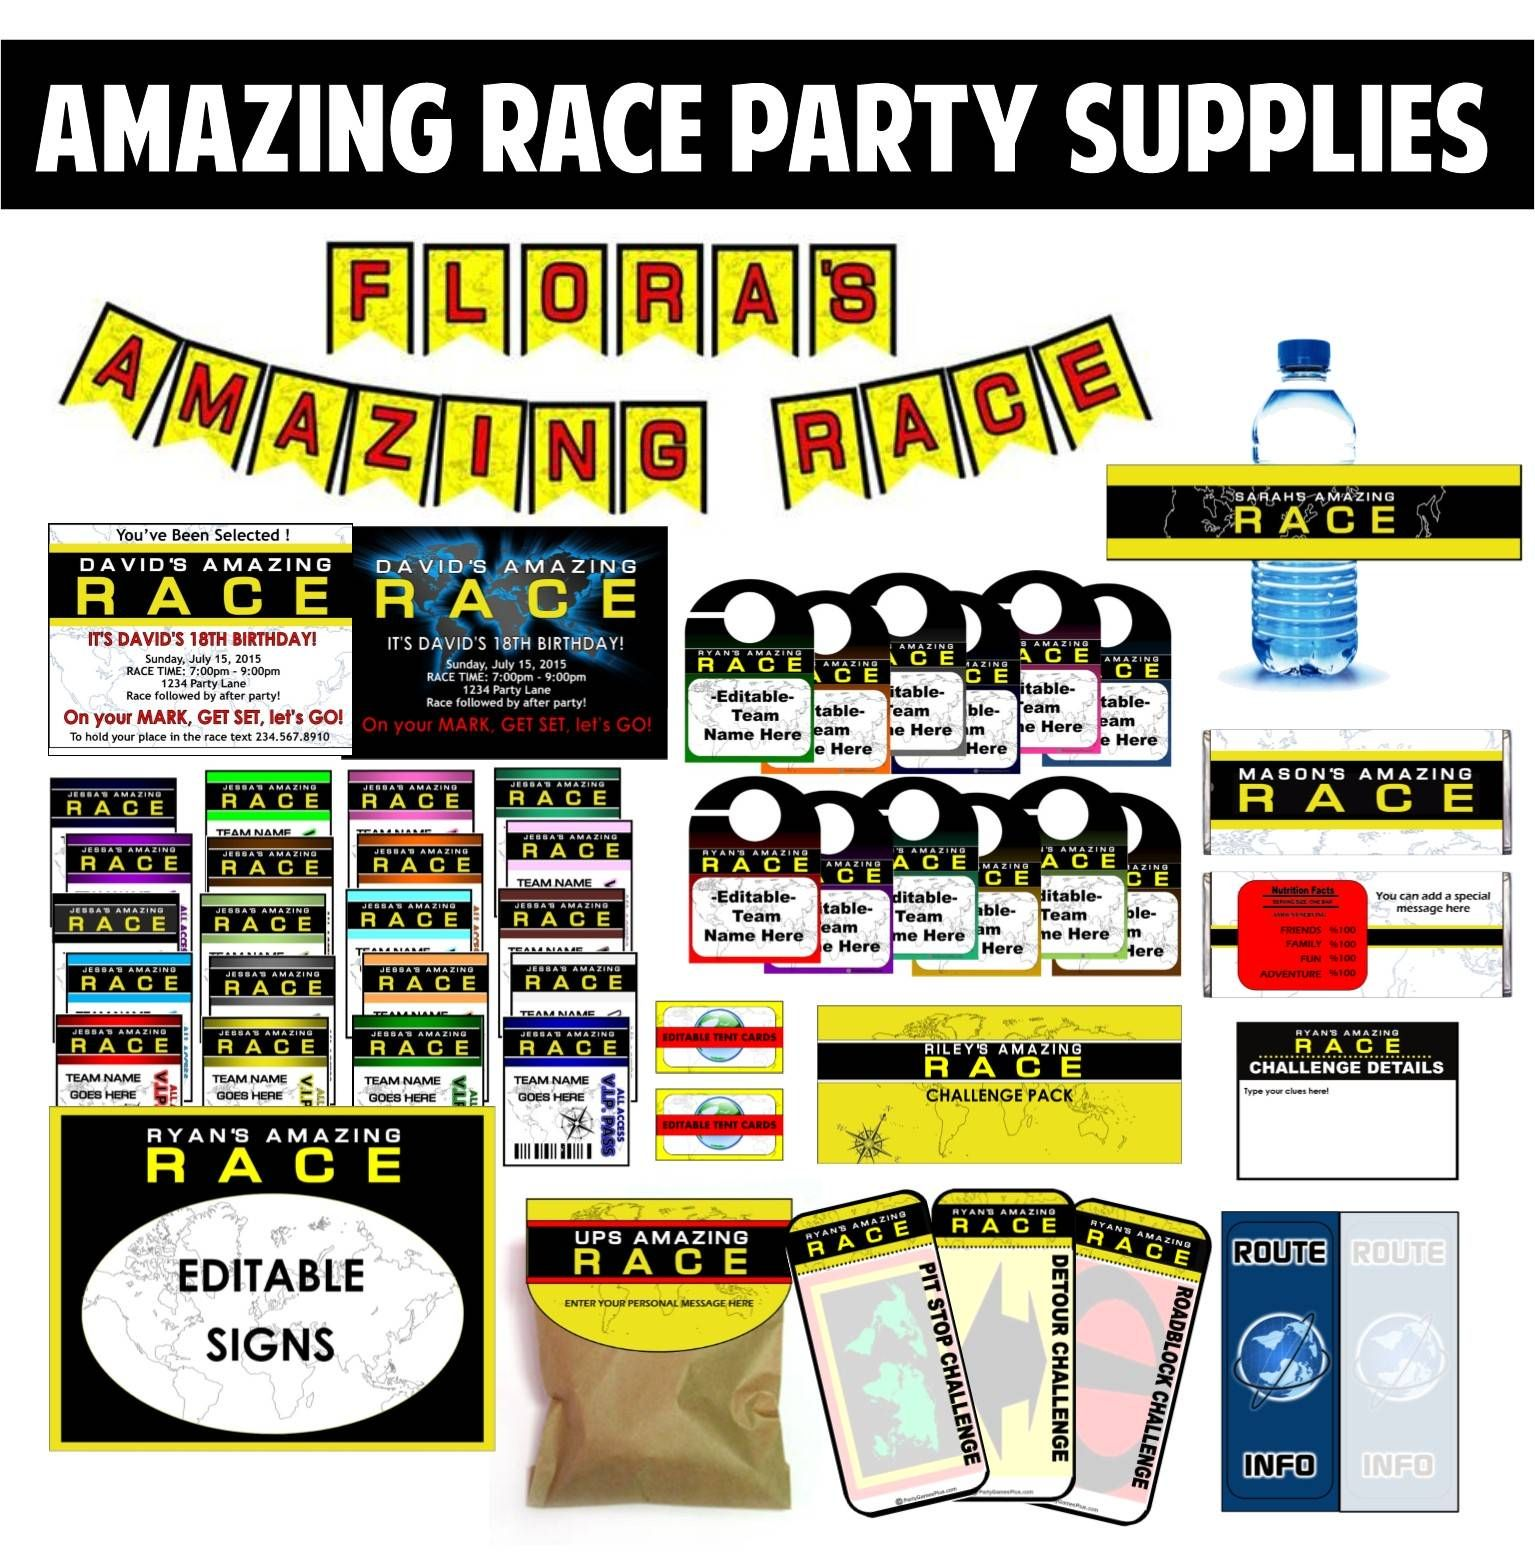 Amazing Race Party Ideas for Pit stops, challenges, clues, and supplies.